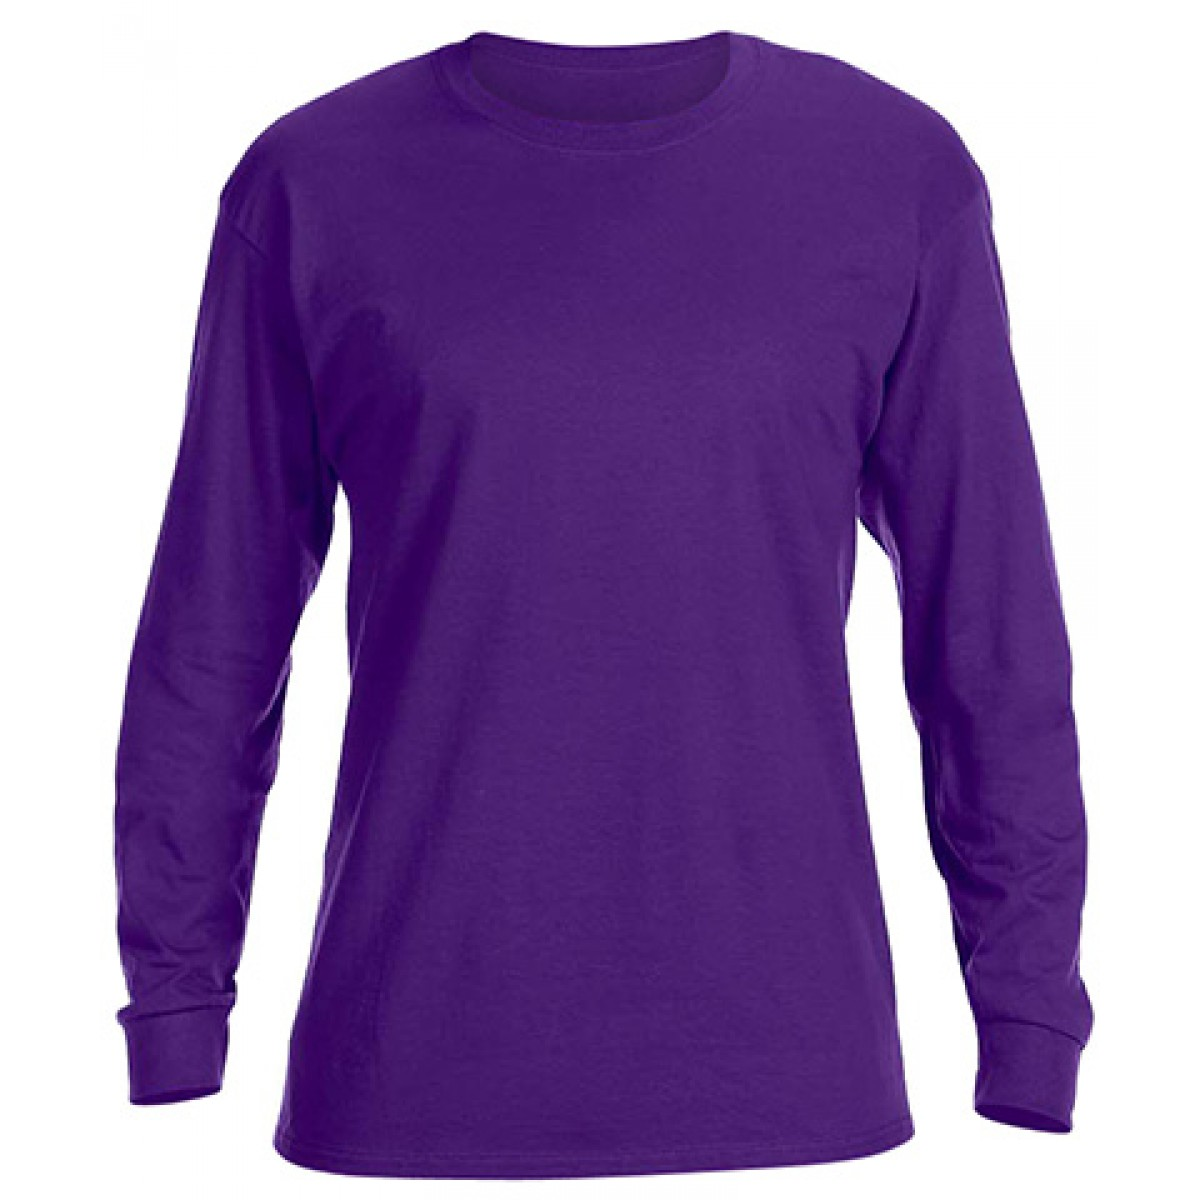 Basic Long Sleeve Crew Neck -Purple-XL